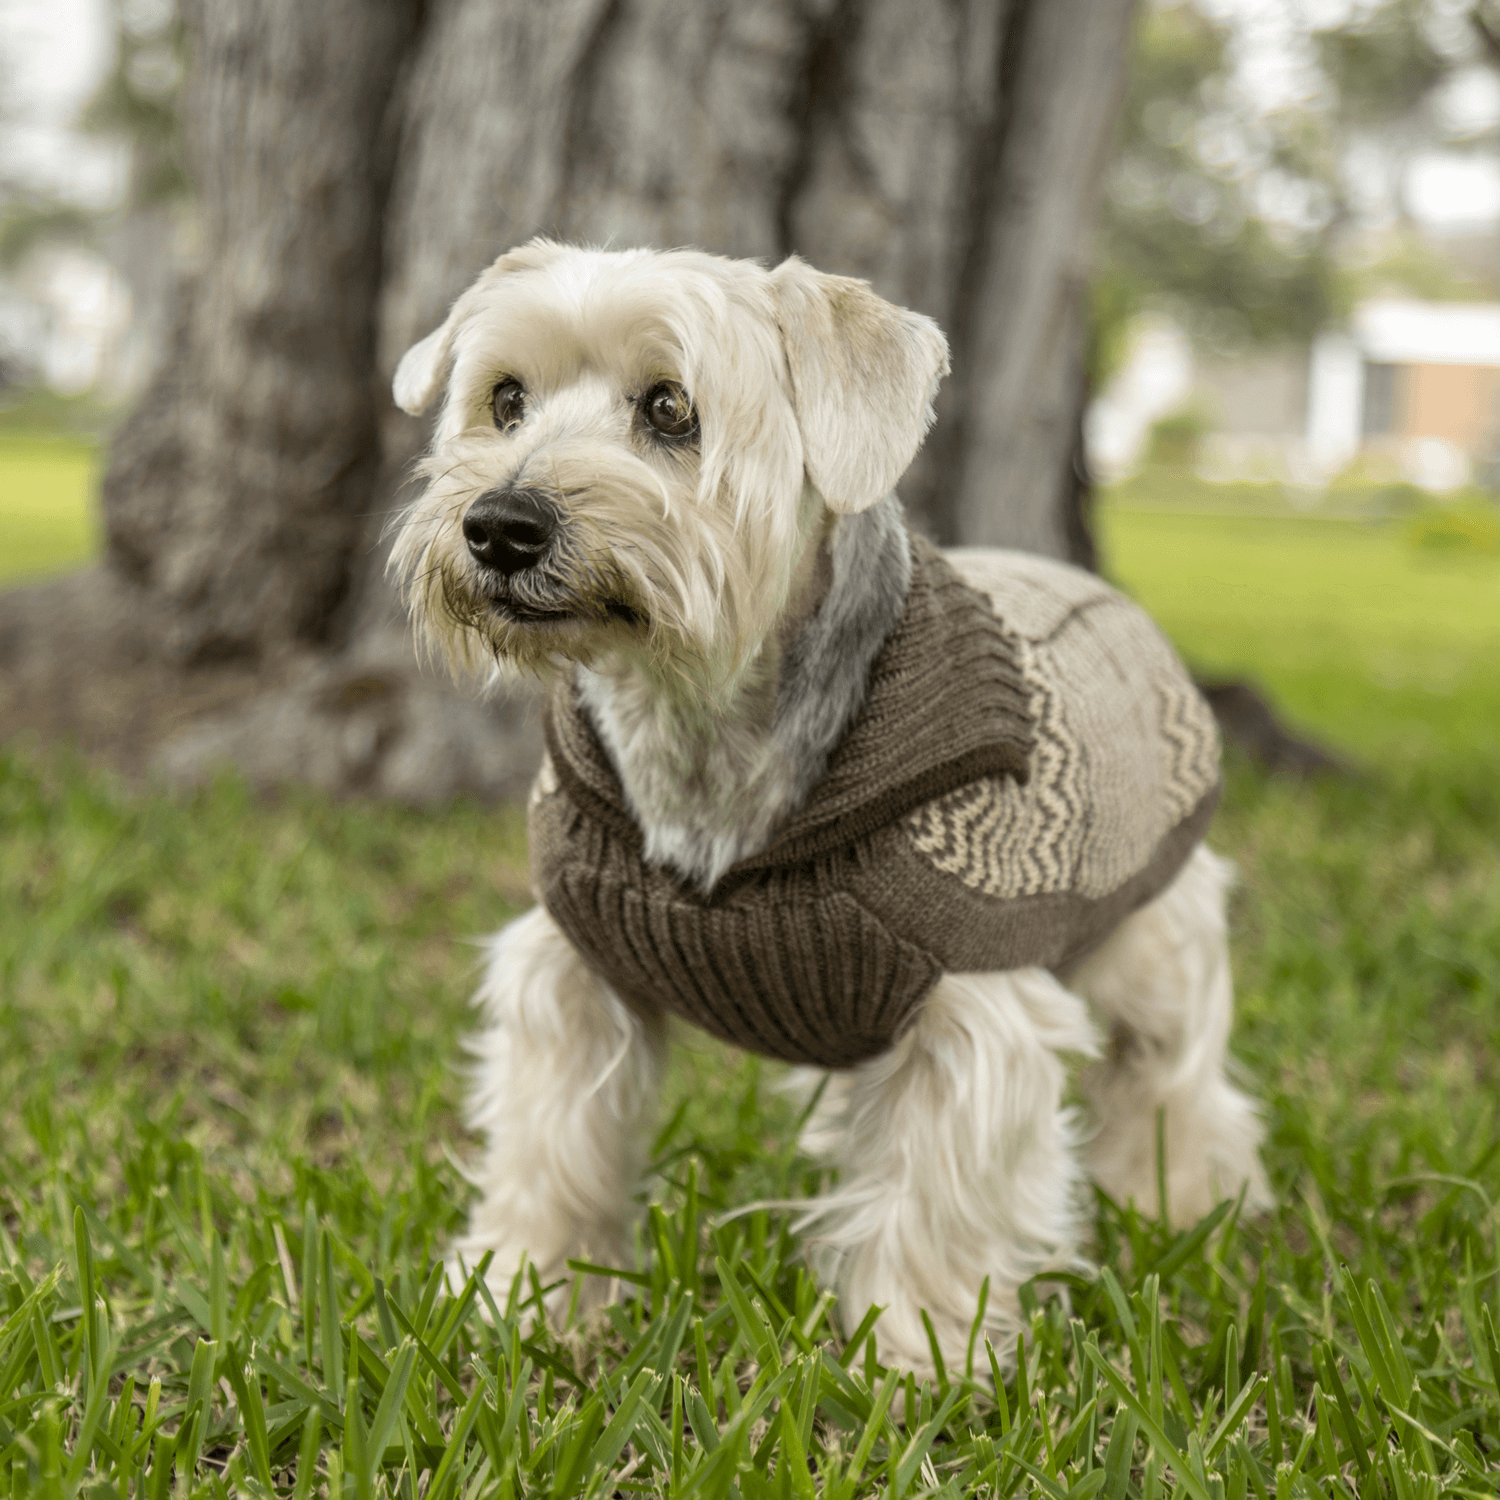 Preppy Natural-Collection 2020: Alqo Wasi alpaca sweater for dogs